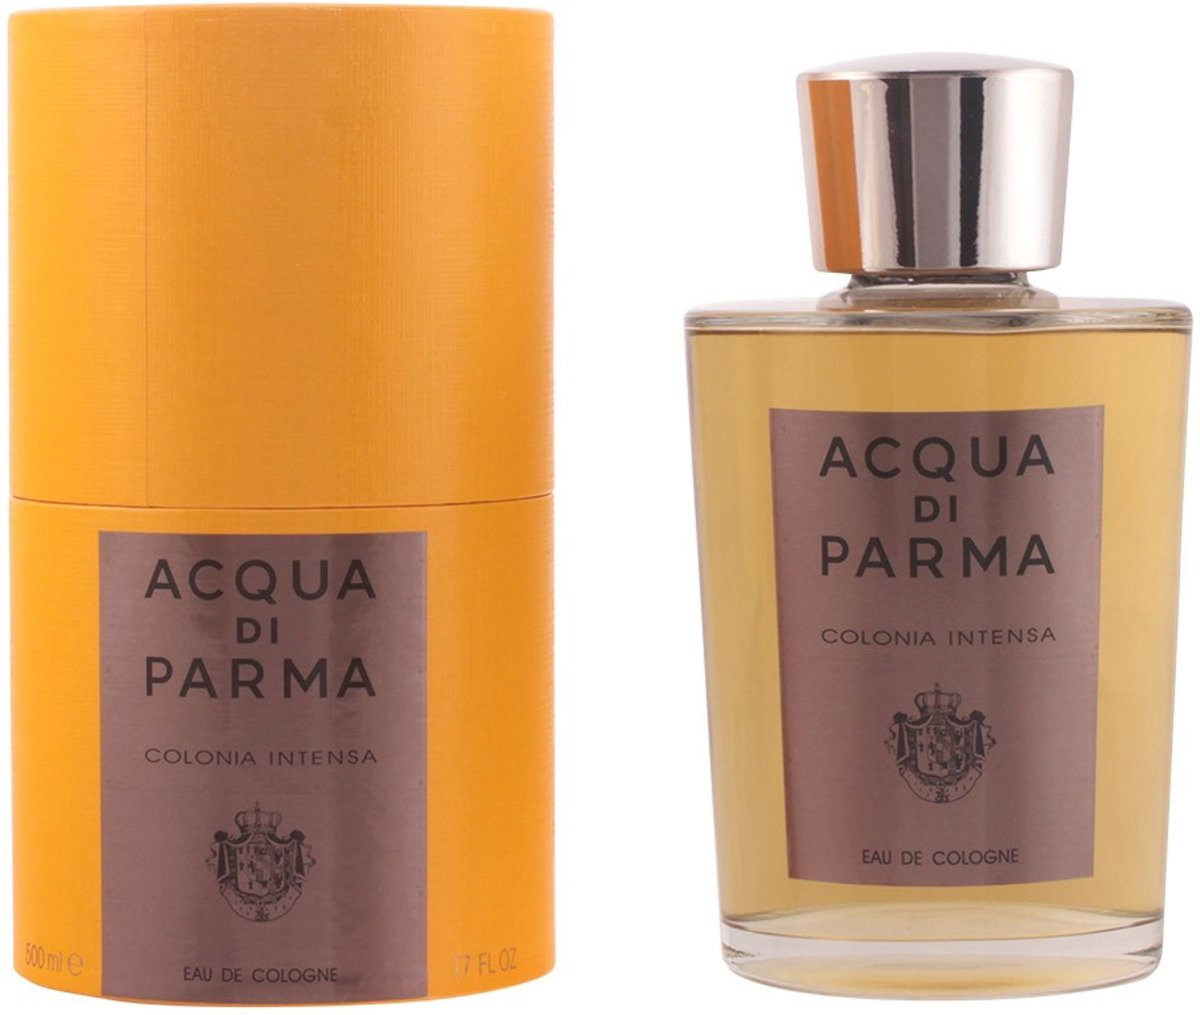 Acqua Di Parma - INTENSA - eau de cologne - 500 ml